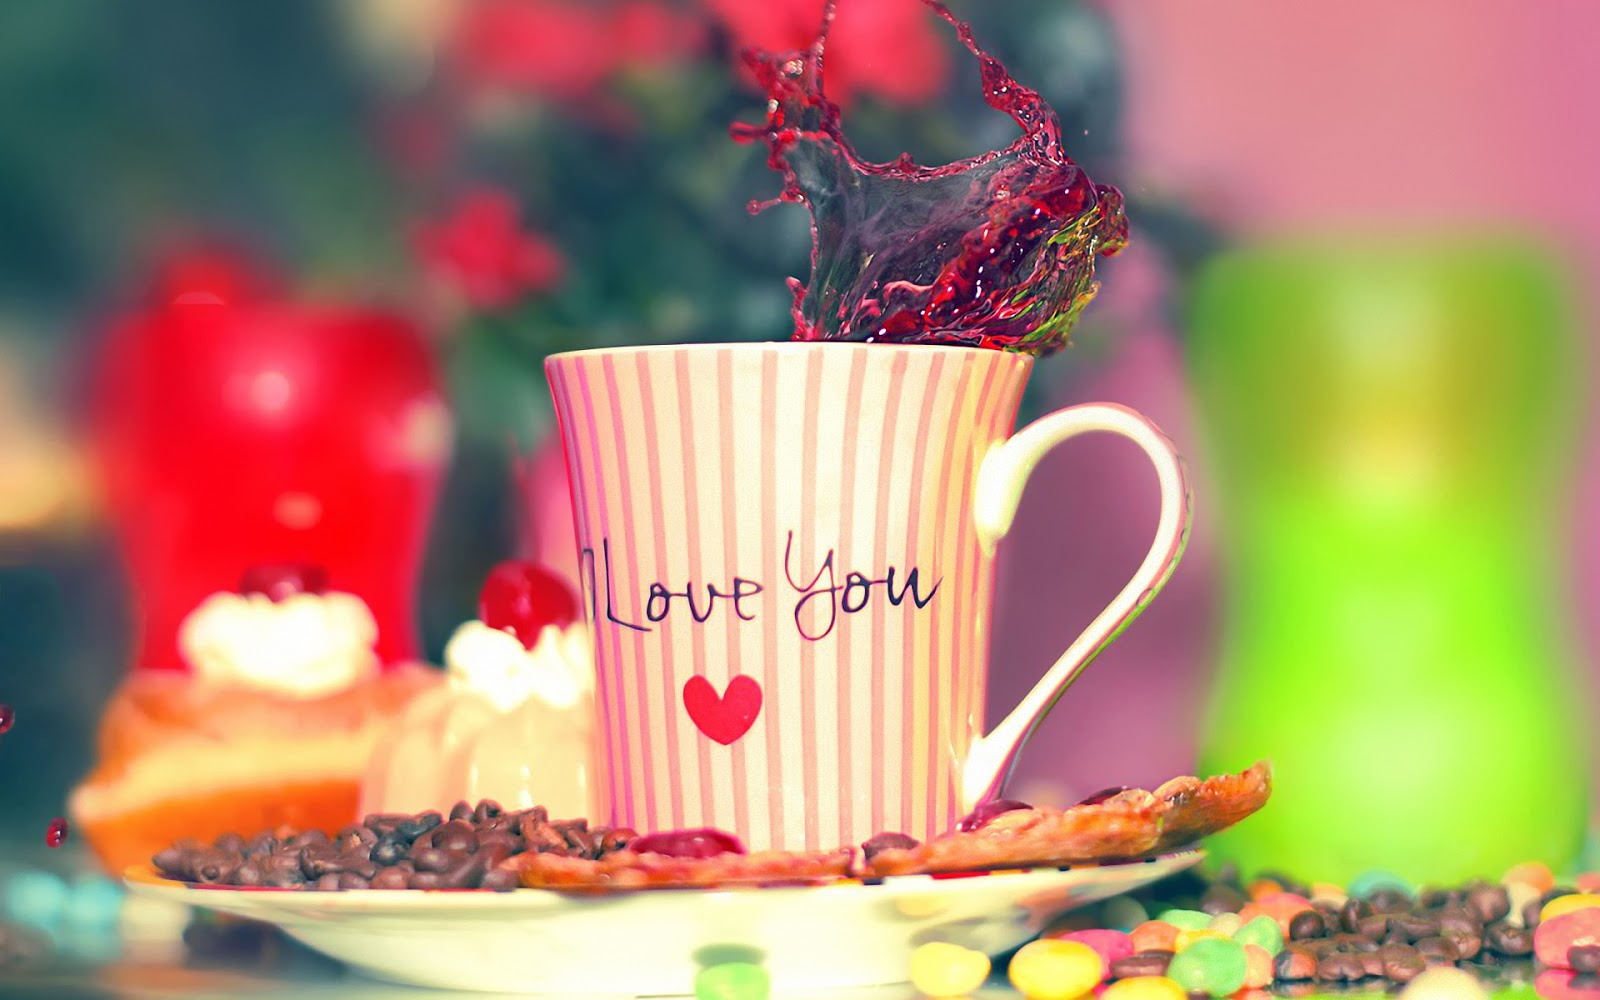 Cute Cup I Love You Images free Download